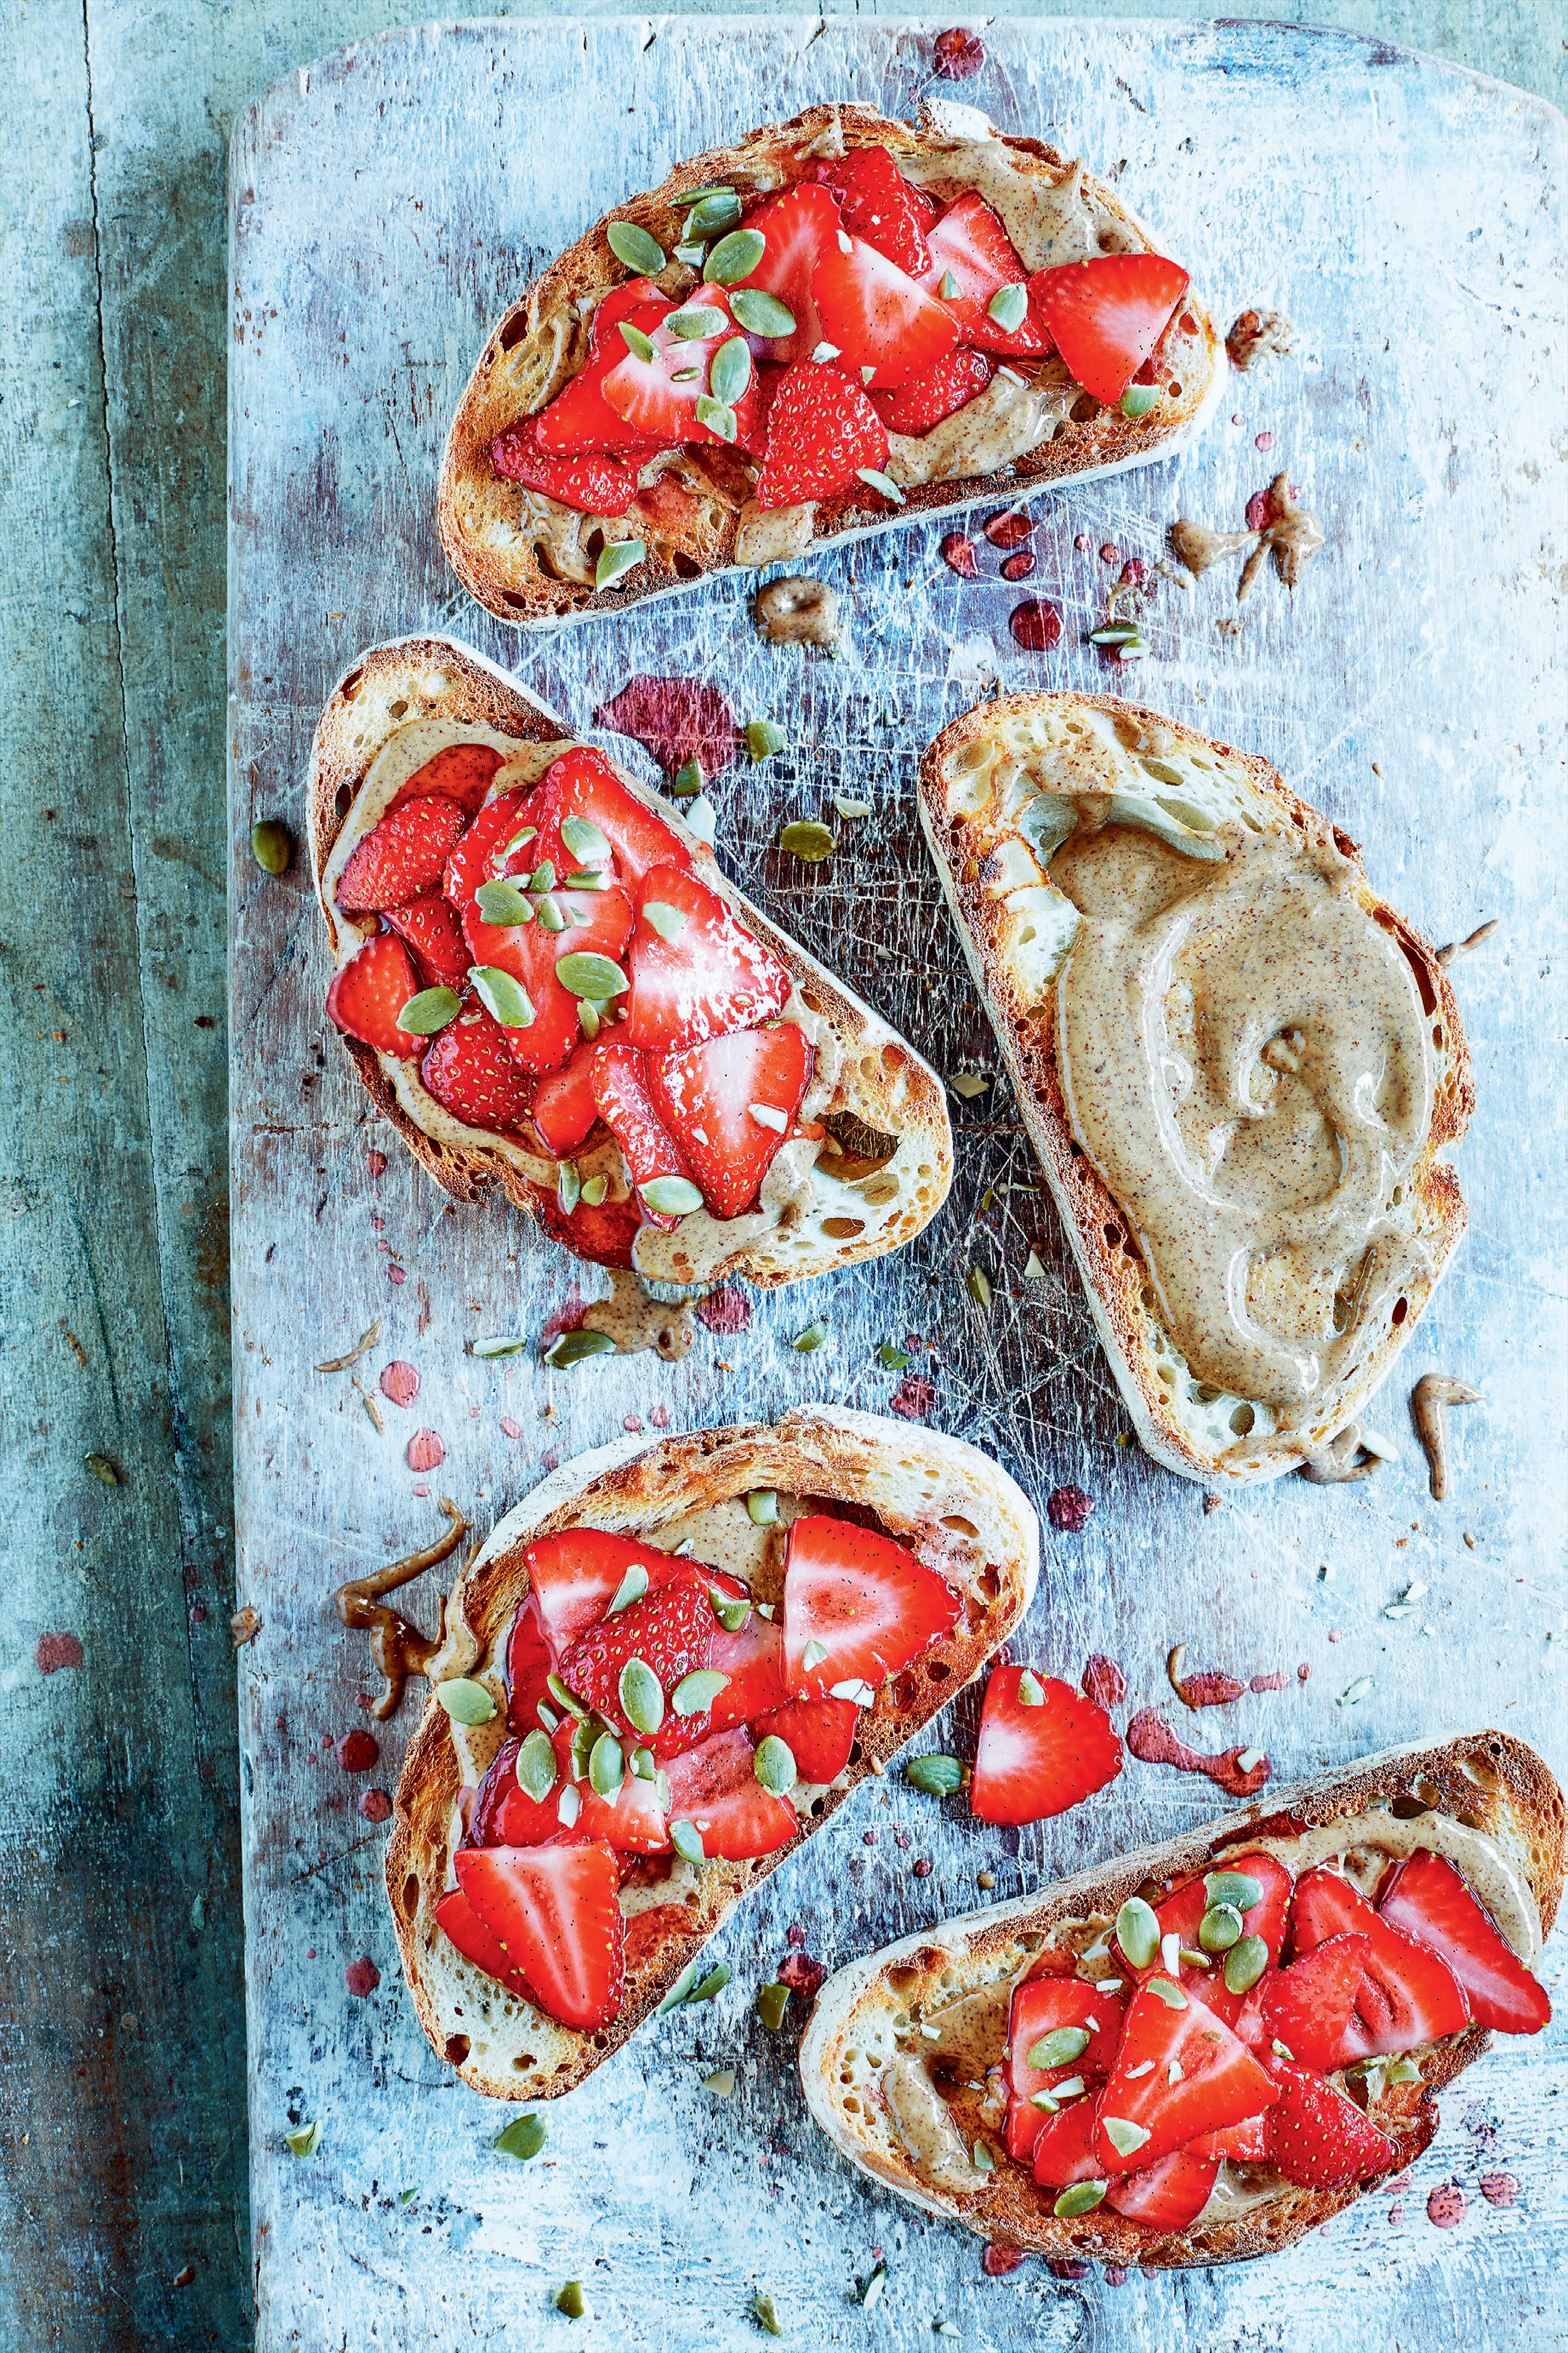 Marinated strawberries and almond butter sourdough